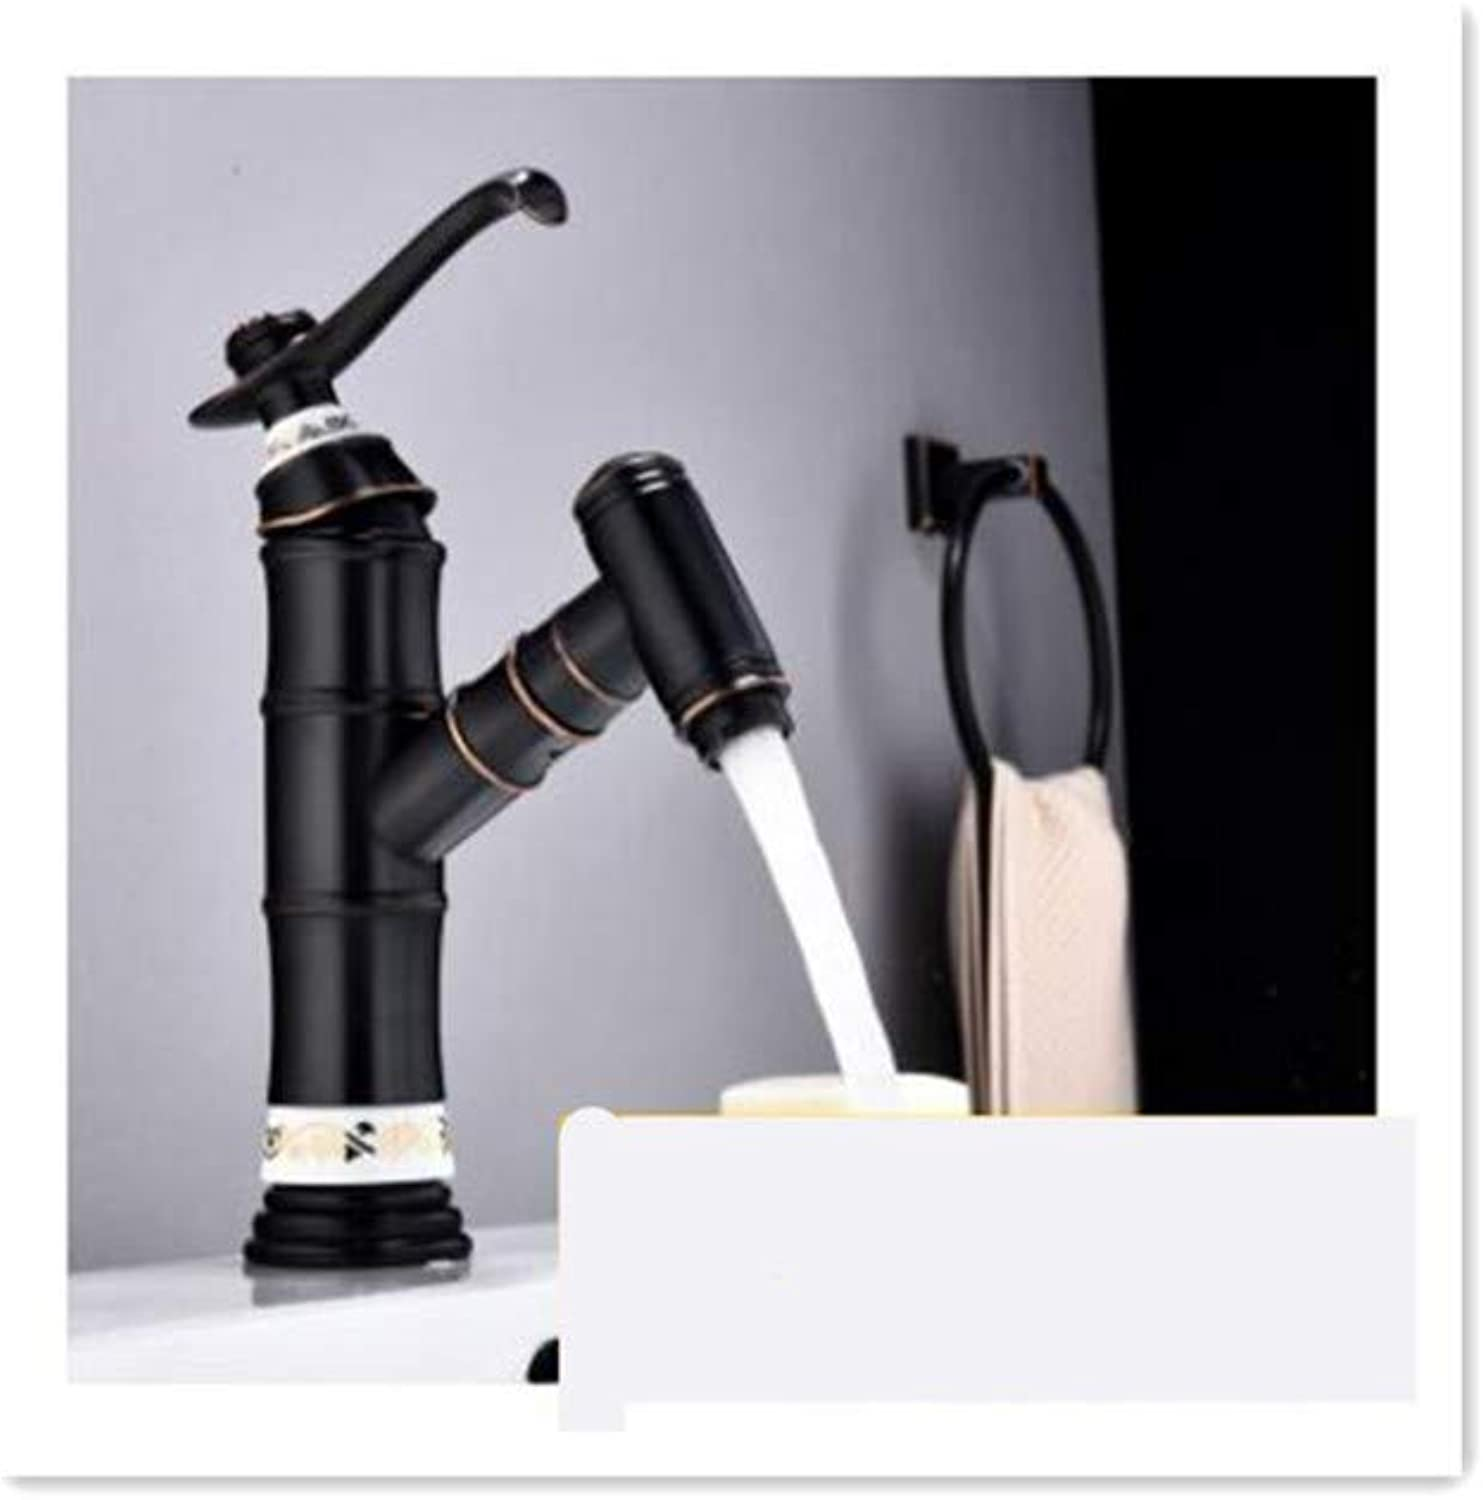 BBQBQQY Copper pull basin faucet black antique basin cold and hot water faucet sink can wash and retractable faucet,D